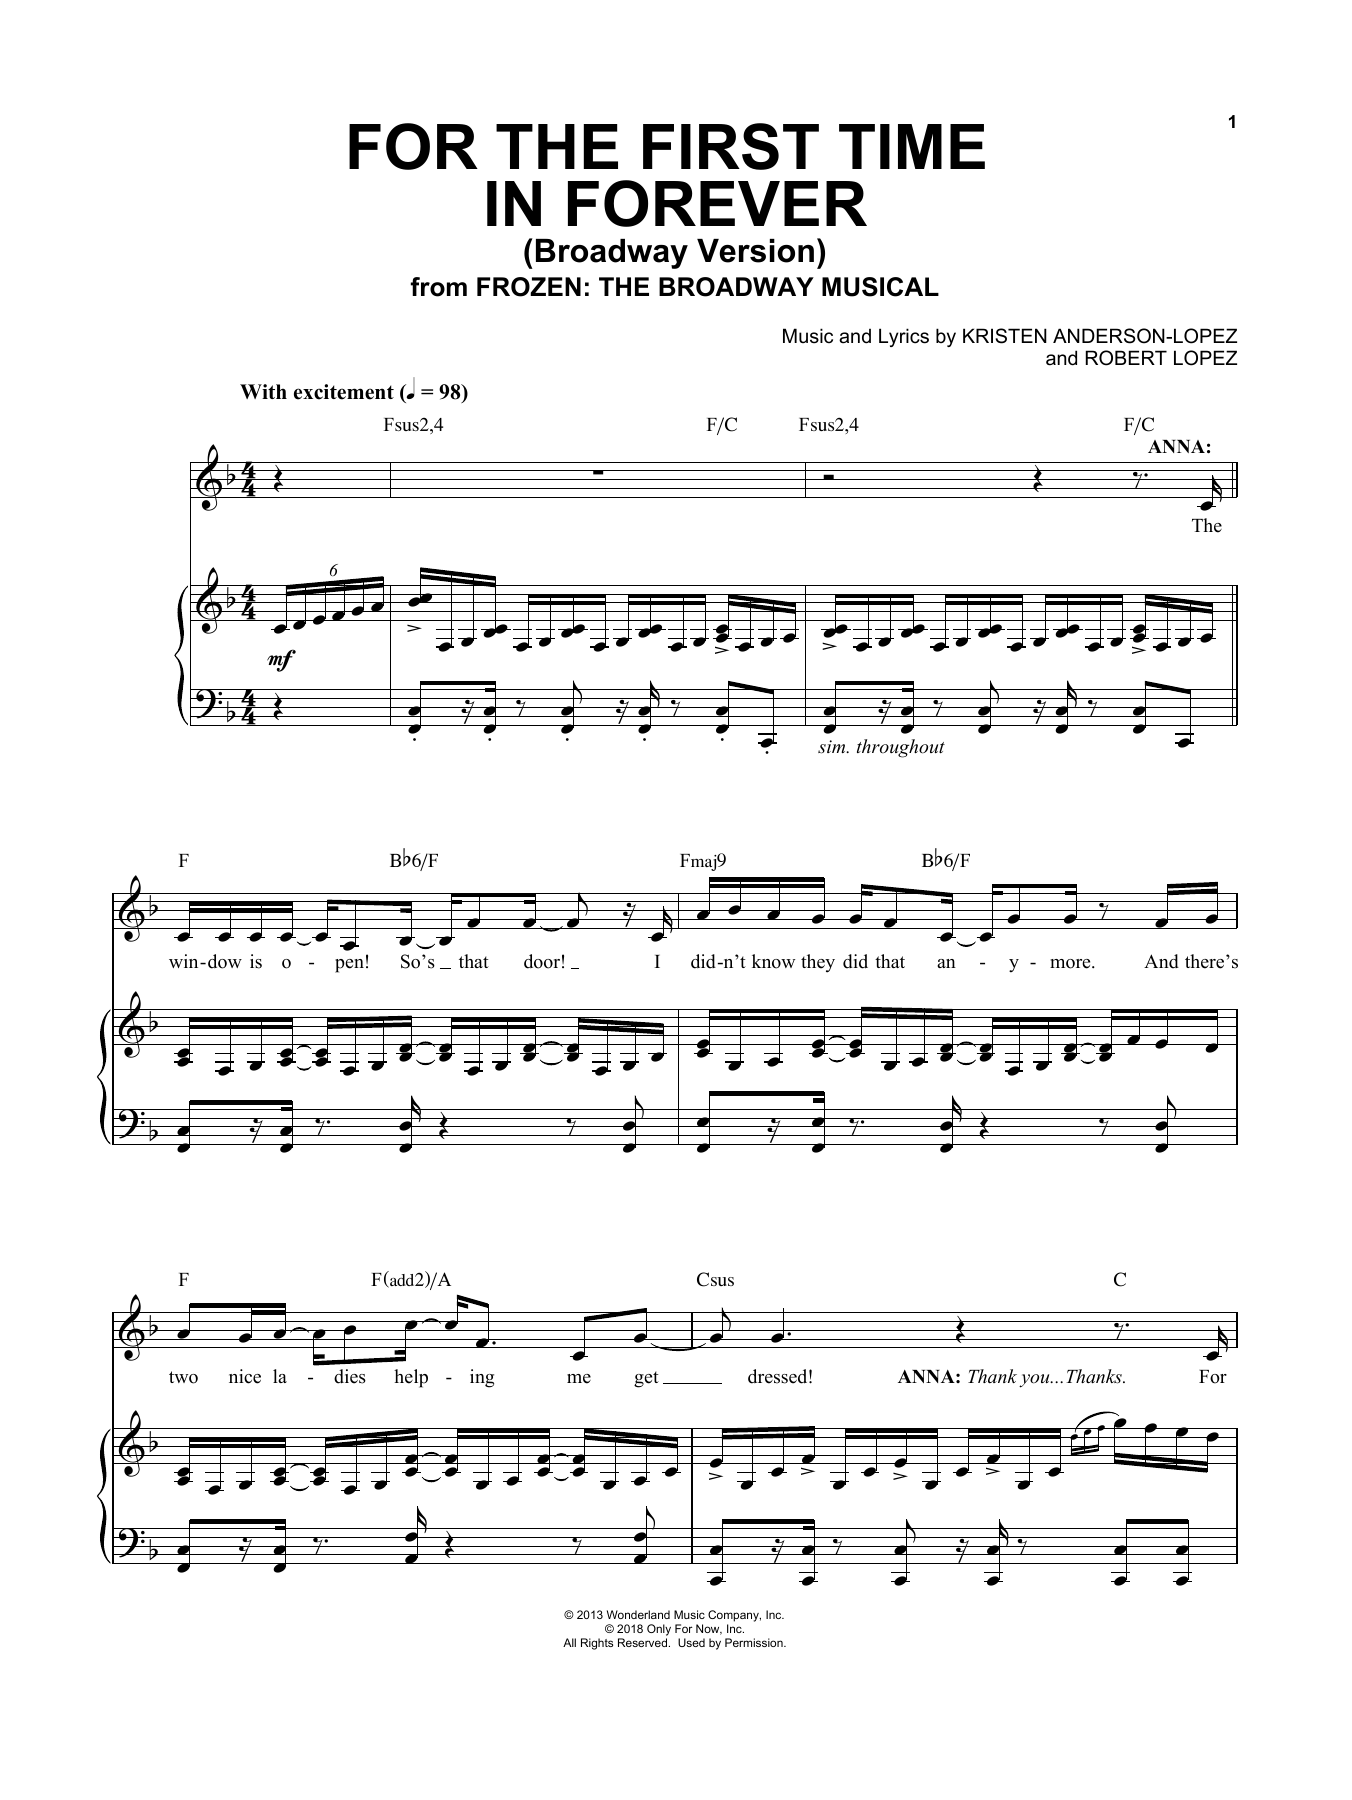 For The First Time In Forever (from Frozen: The Broadway Musical) (Piano & Vocal)